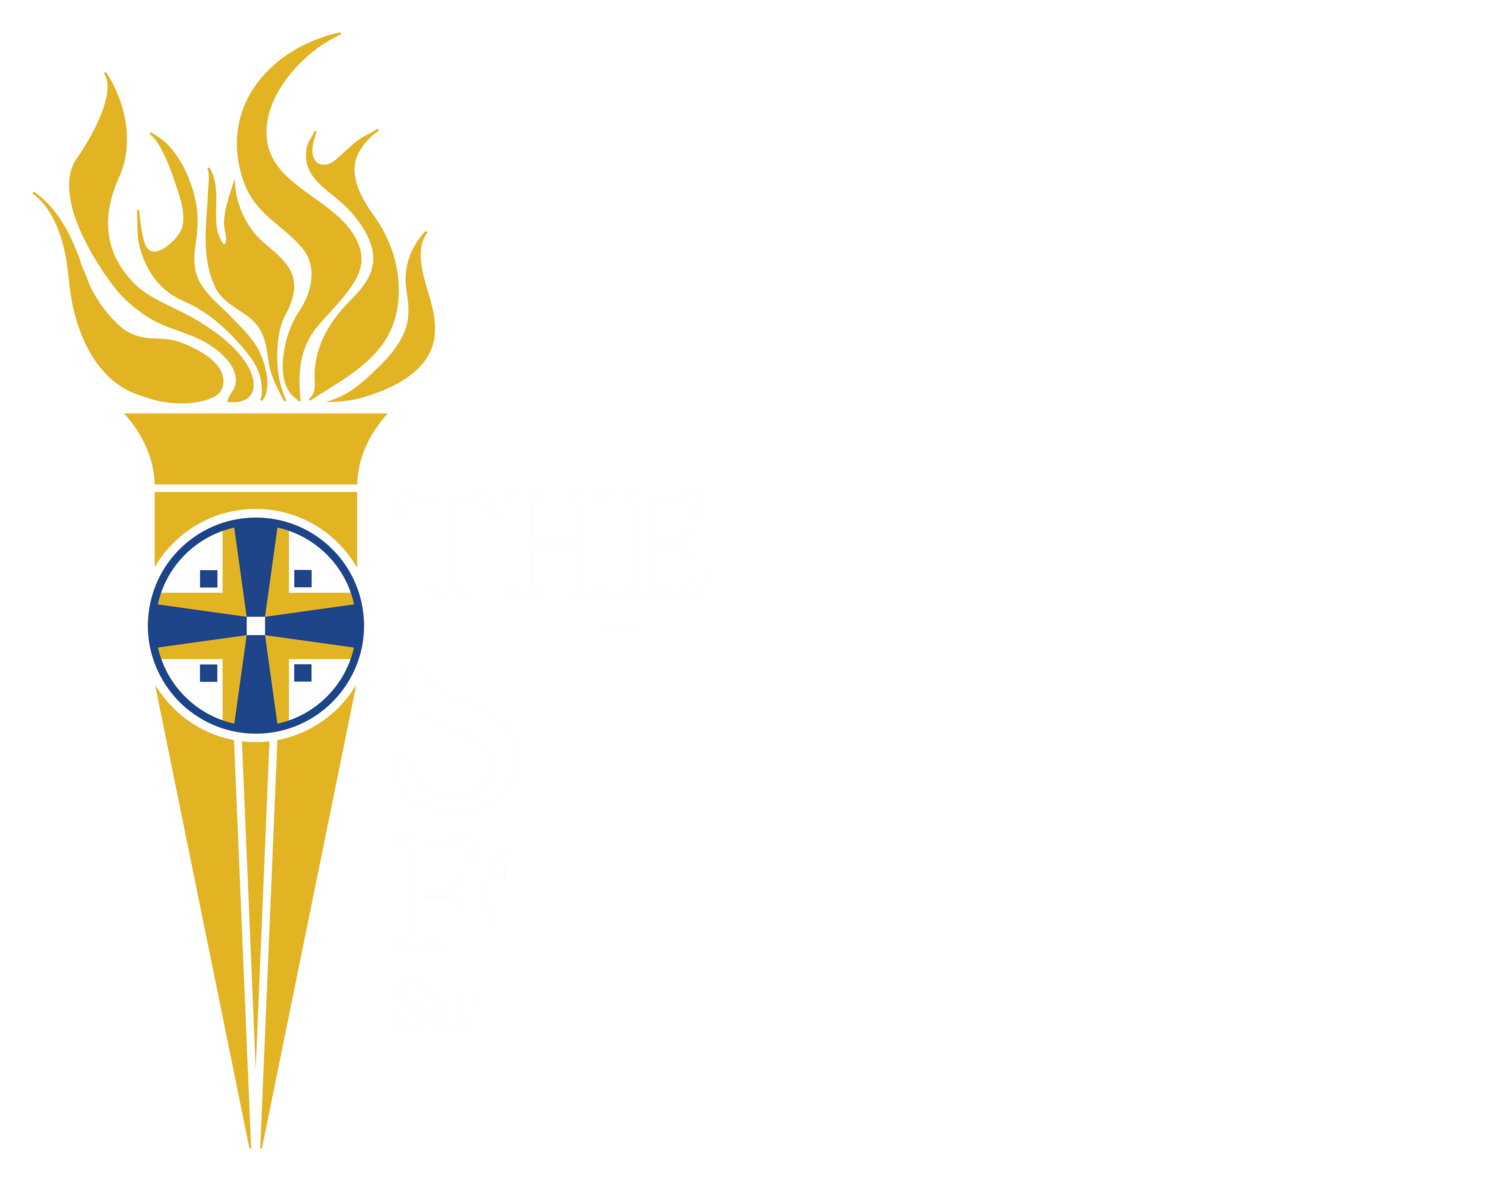 Schola Foundation